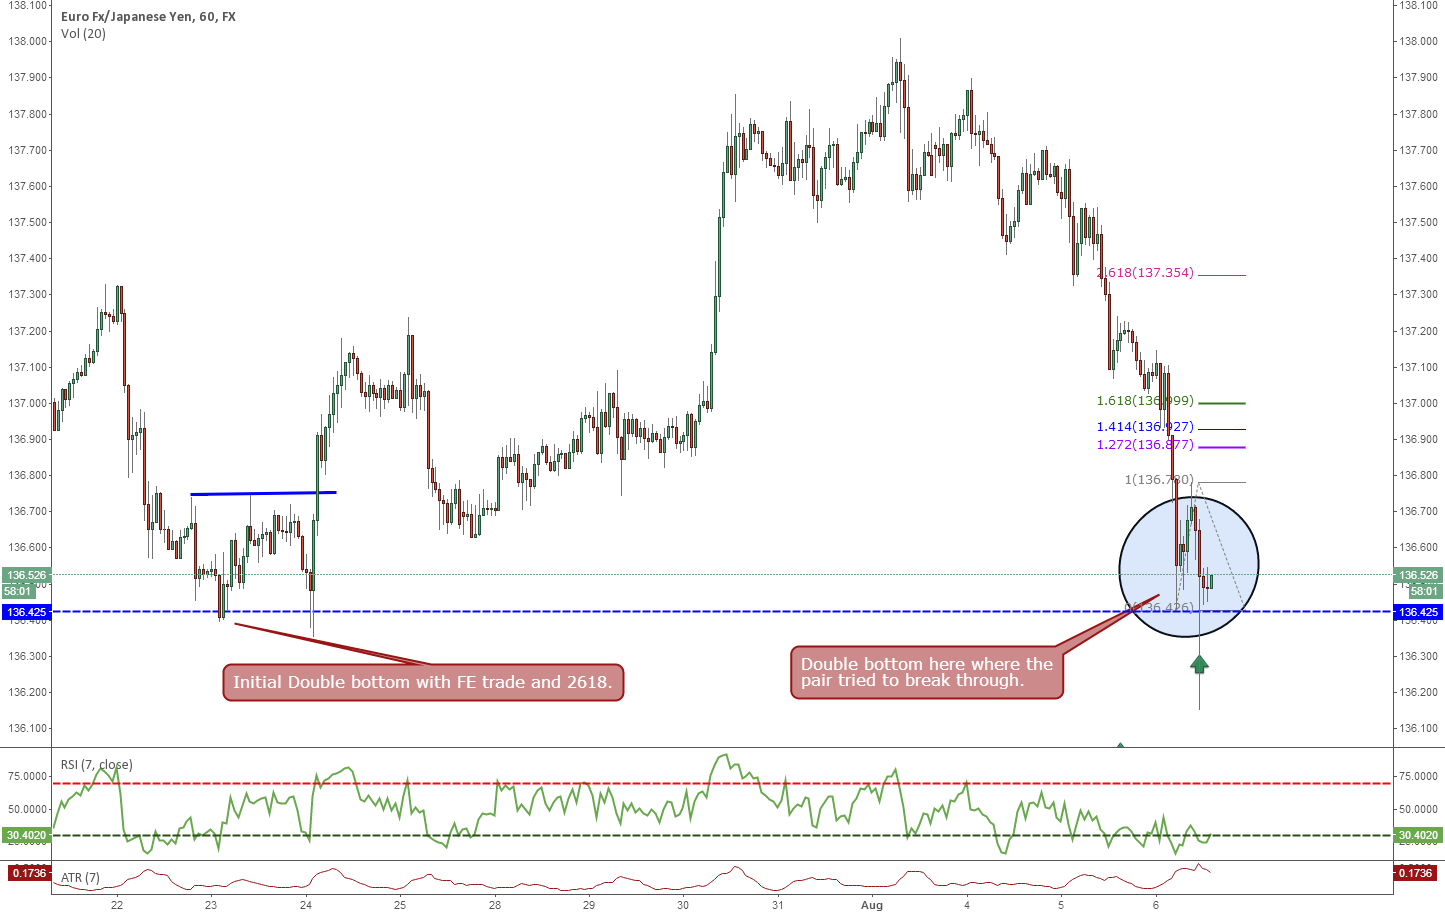 EURJPY Double Bottom Long Opportunity